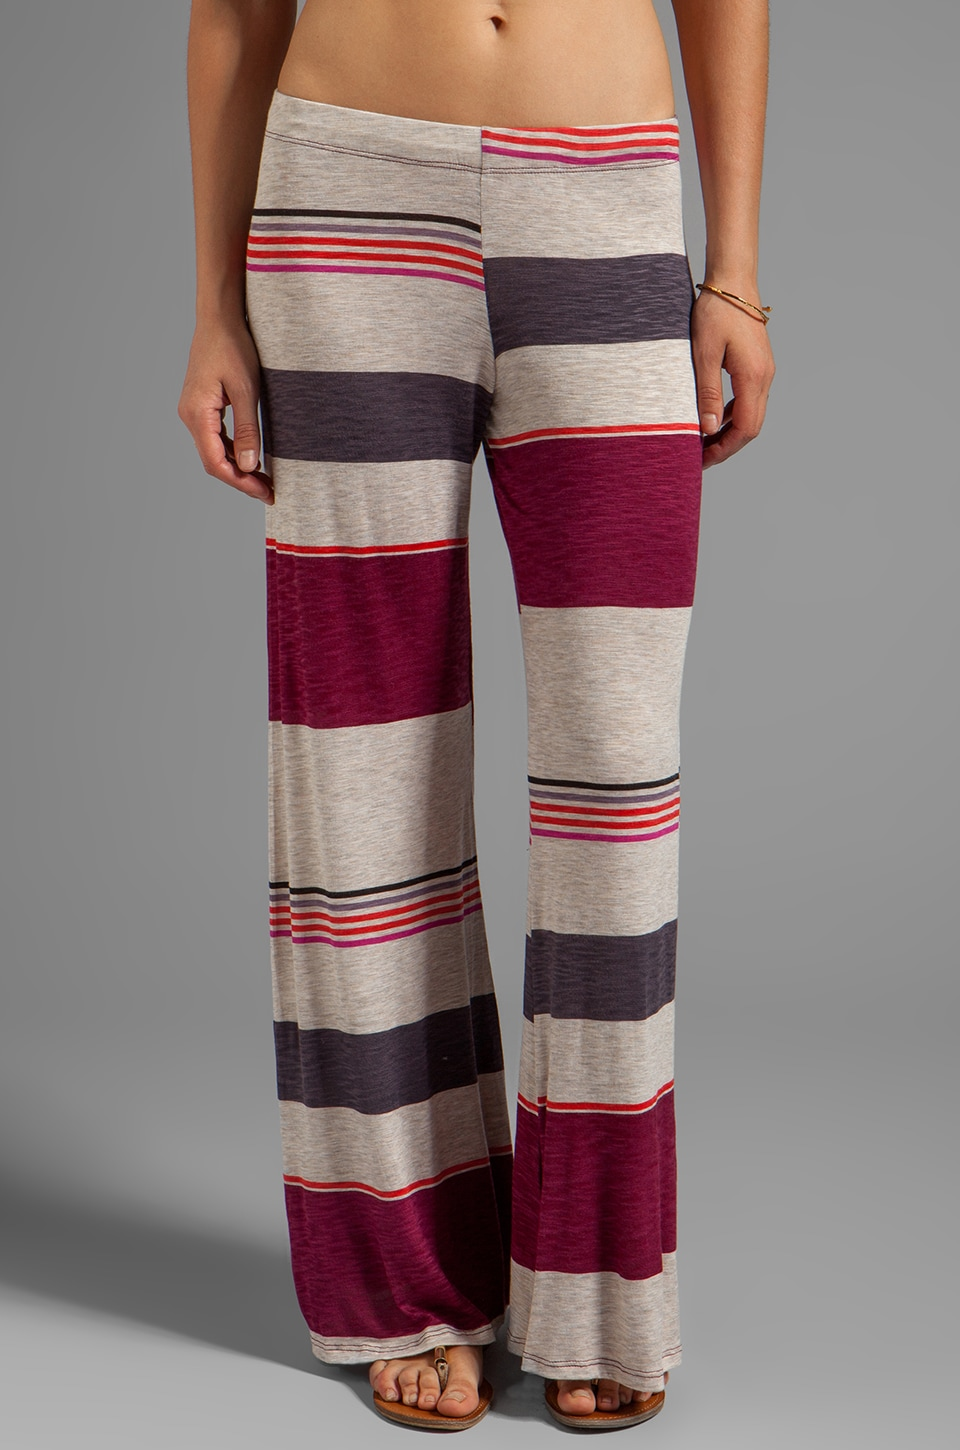 Michael Lauren Derby Wide Leg Pant in Desert Plum Stripe